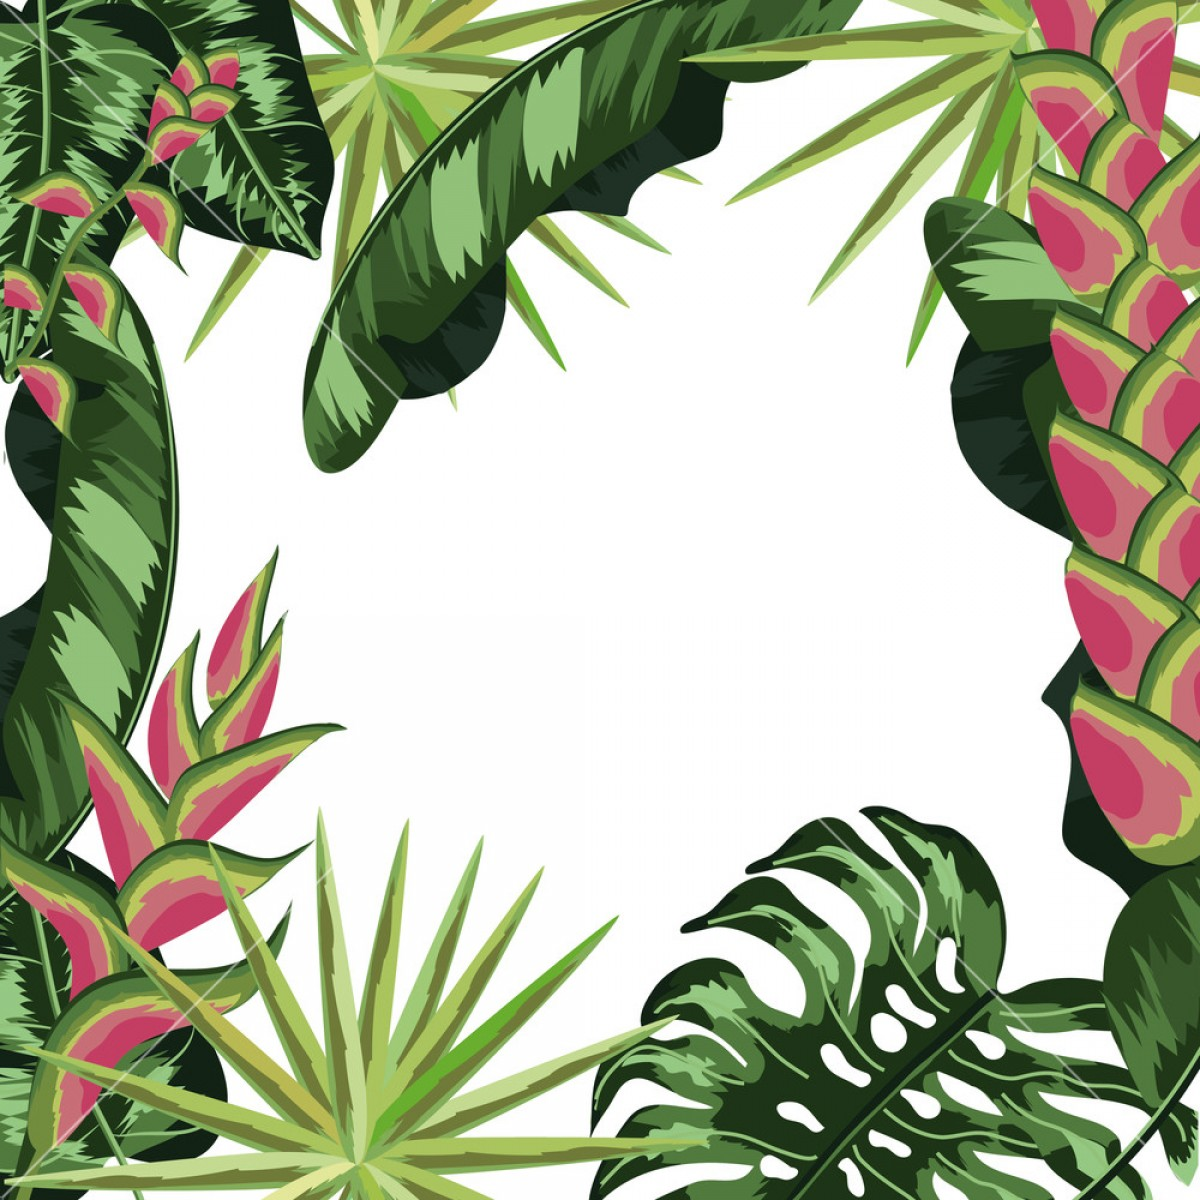 Vector Leaf Graphicd: Tropical Leaves And Flowers Background Pattern Vector Illustration Graphic Design Sumjjykiqjnwmvk